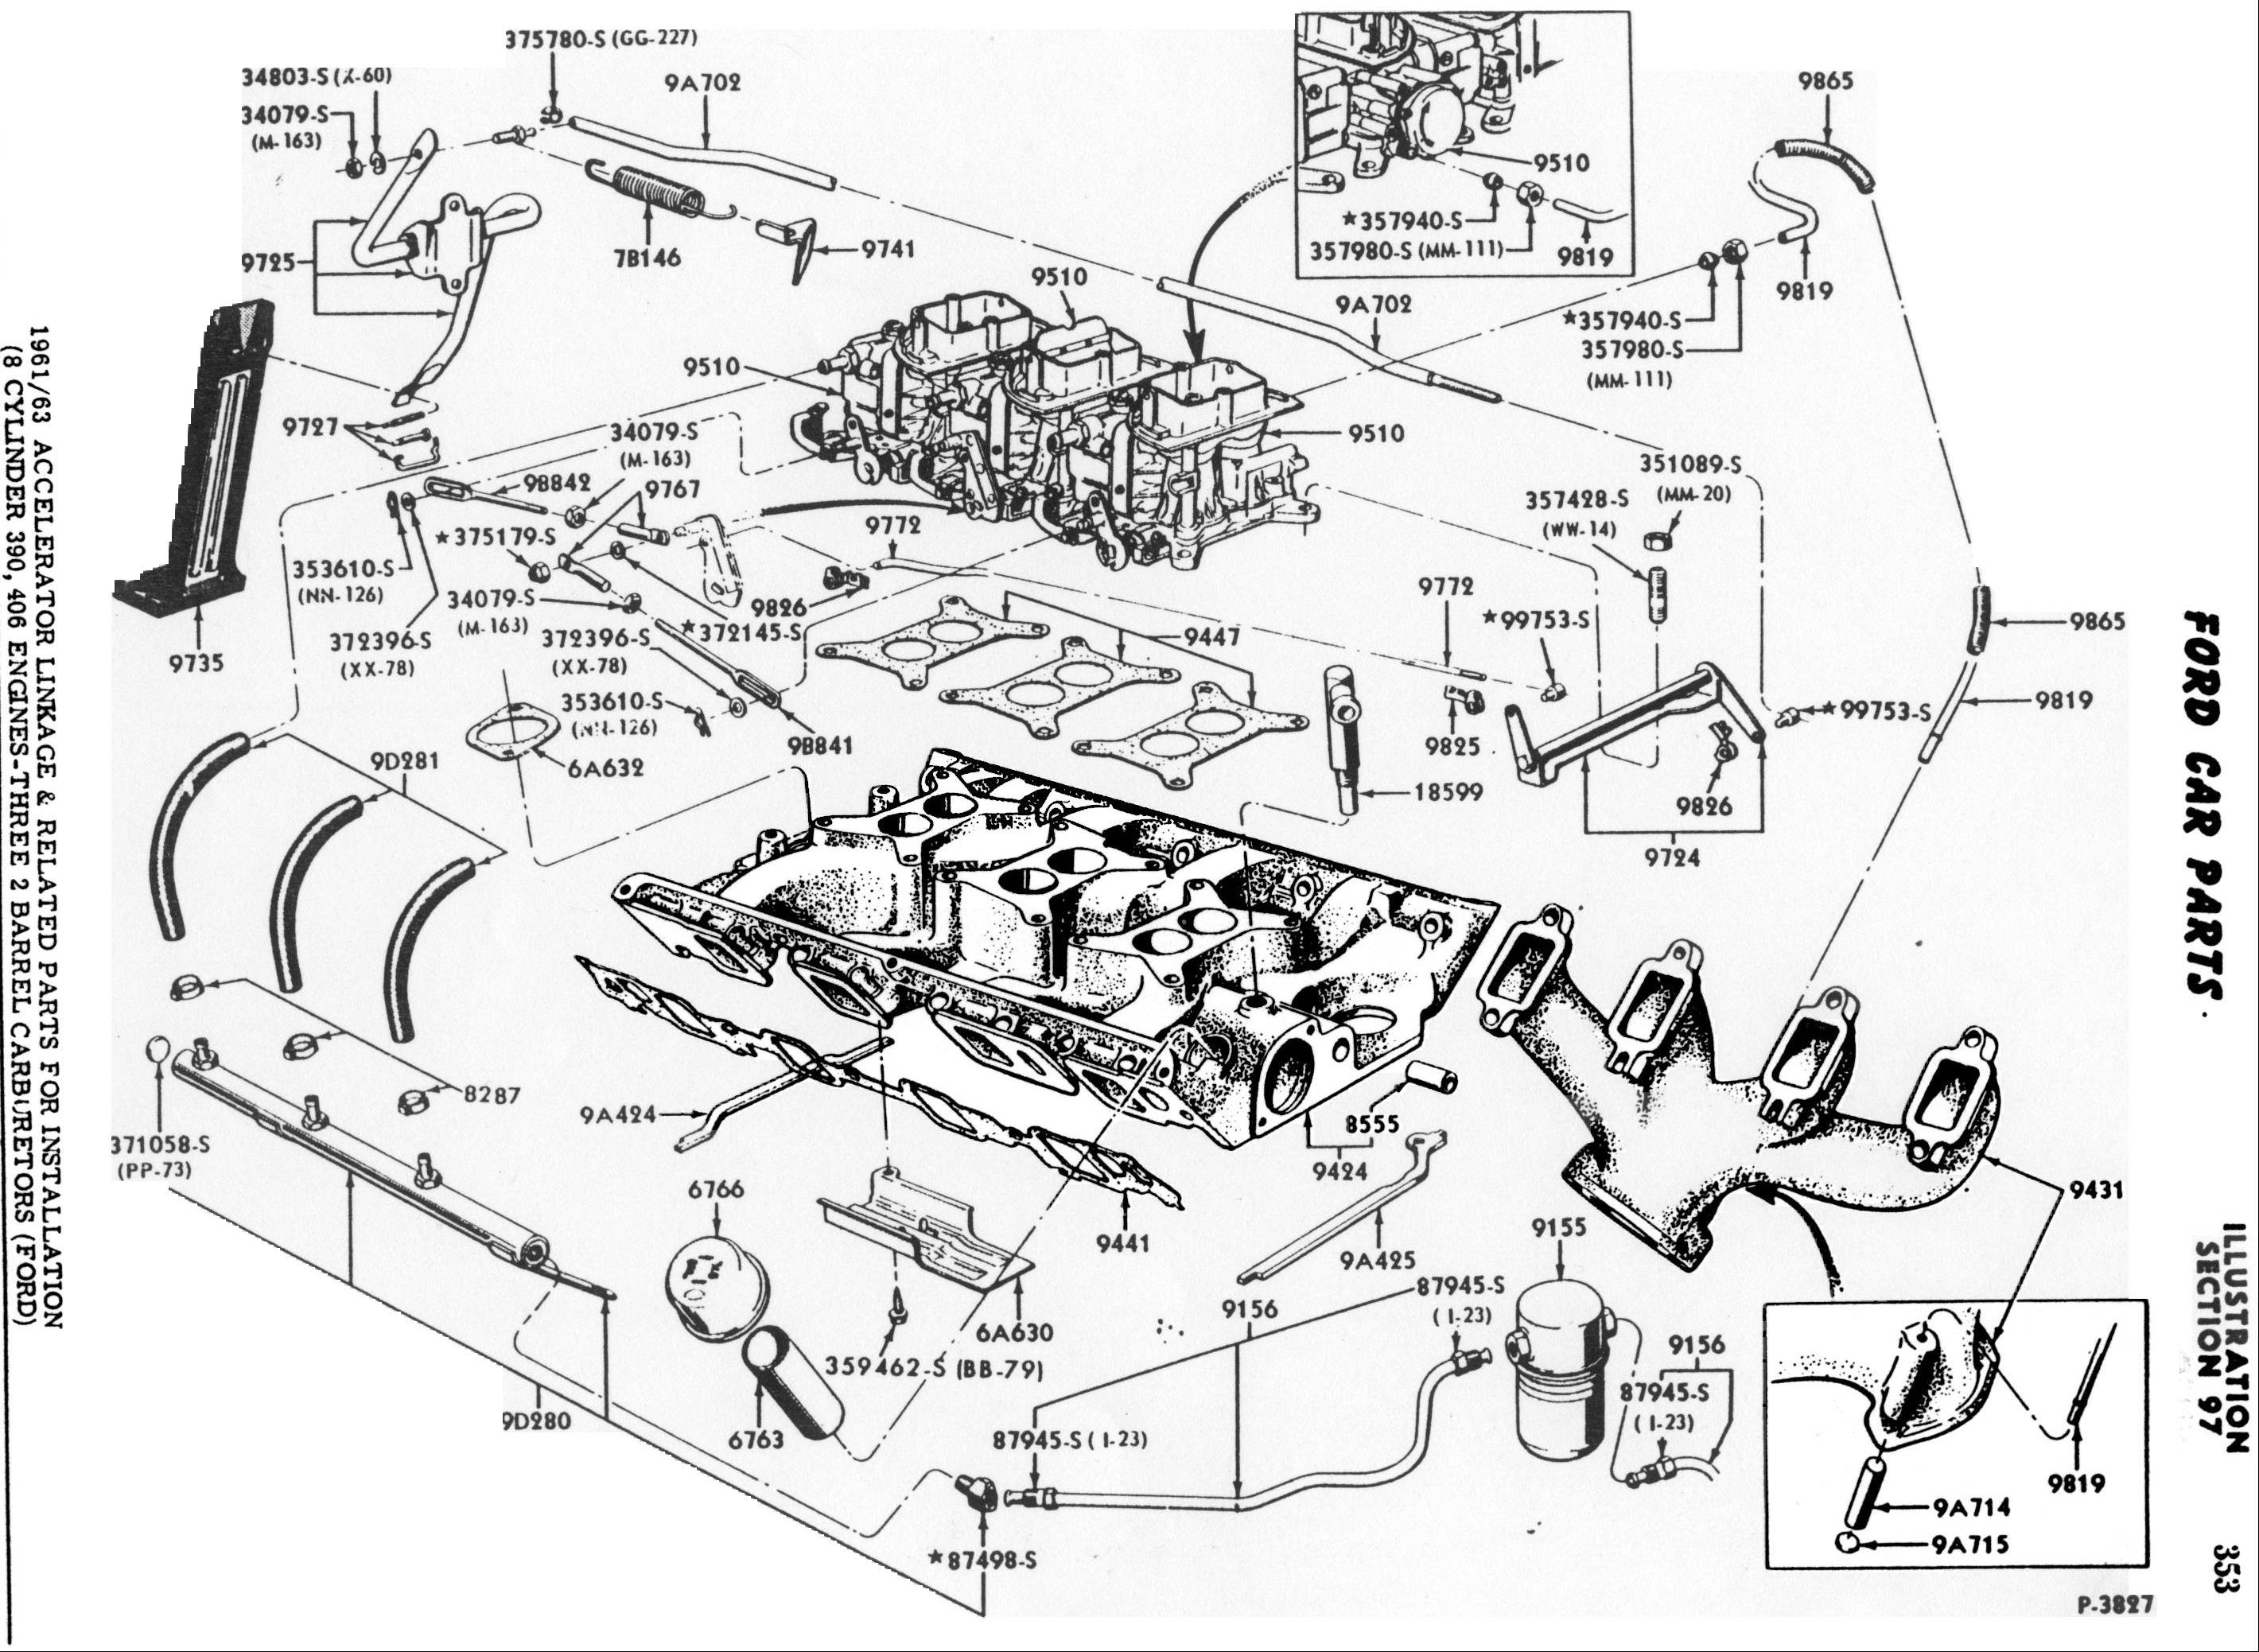 Ford 460 engine diagram 460 ford engine diagram wiring info of ford 460 engine diagram